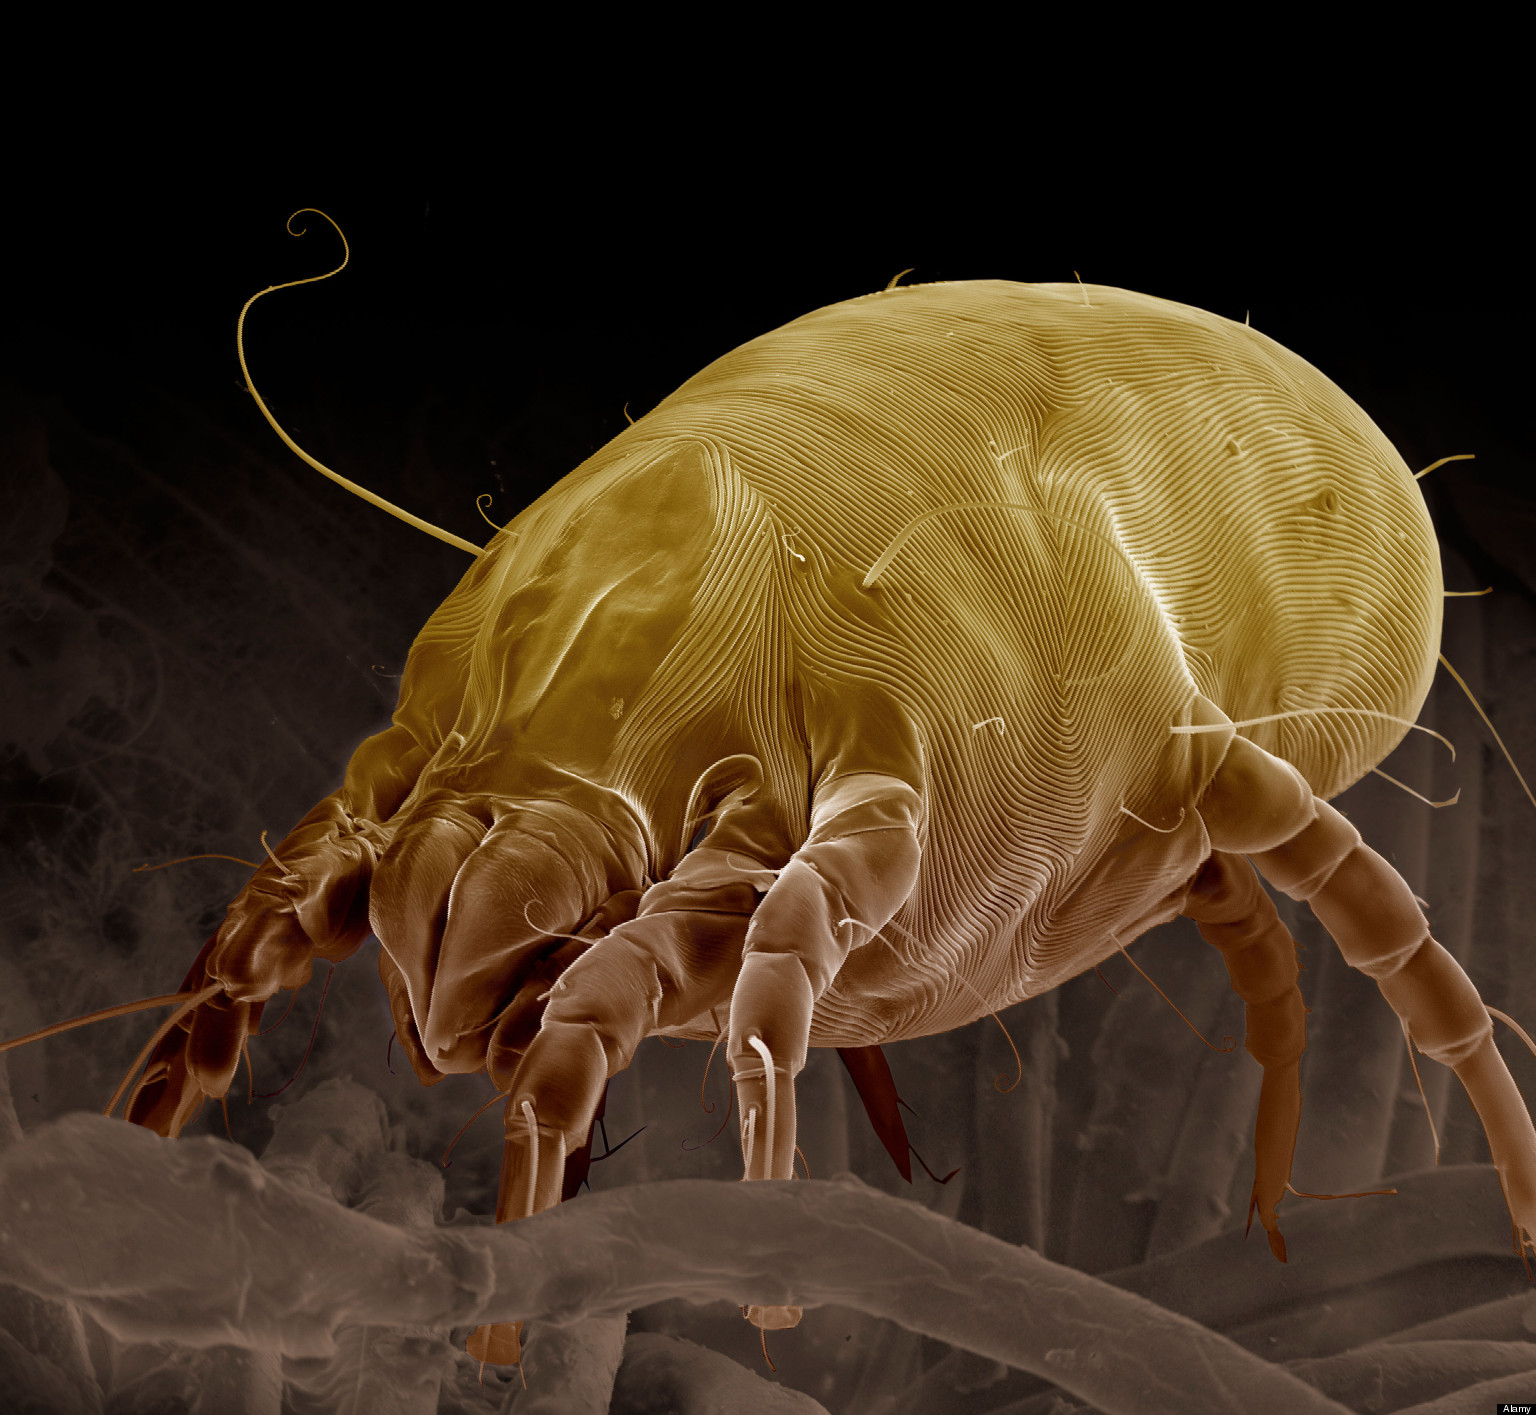 Dust Mite Bed Bugs